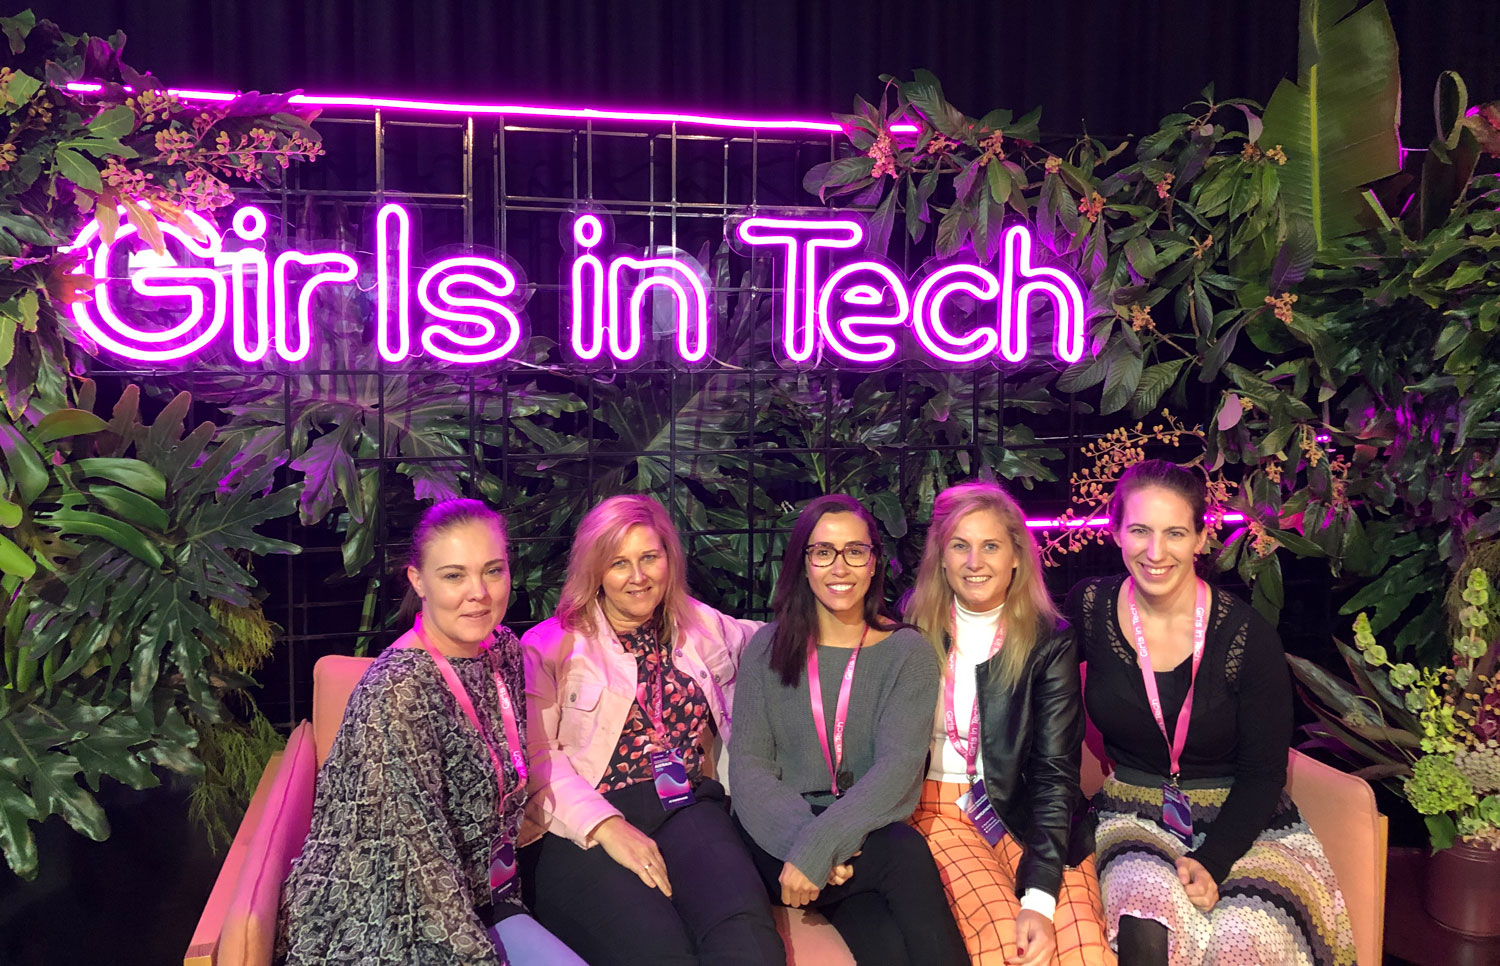 Girls-in-tech